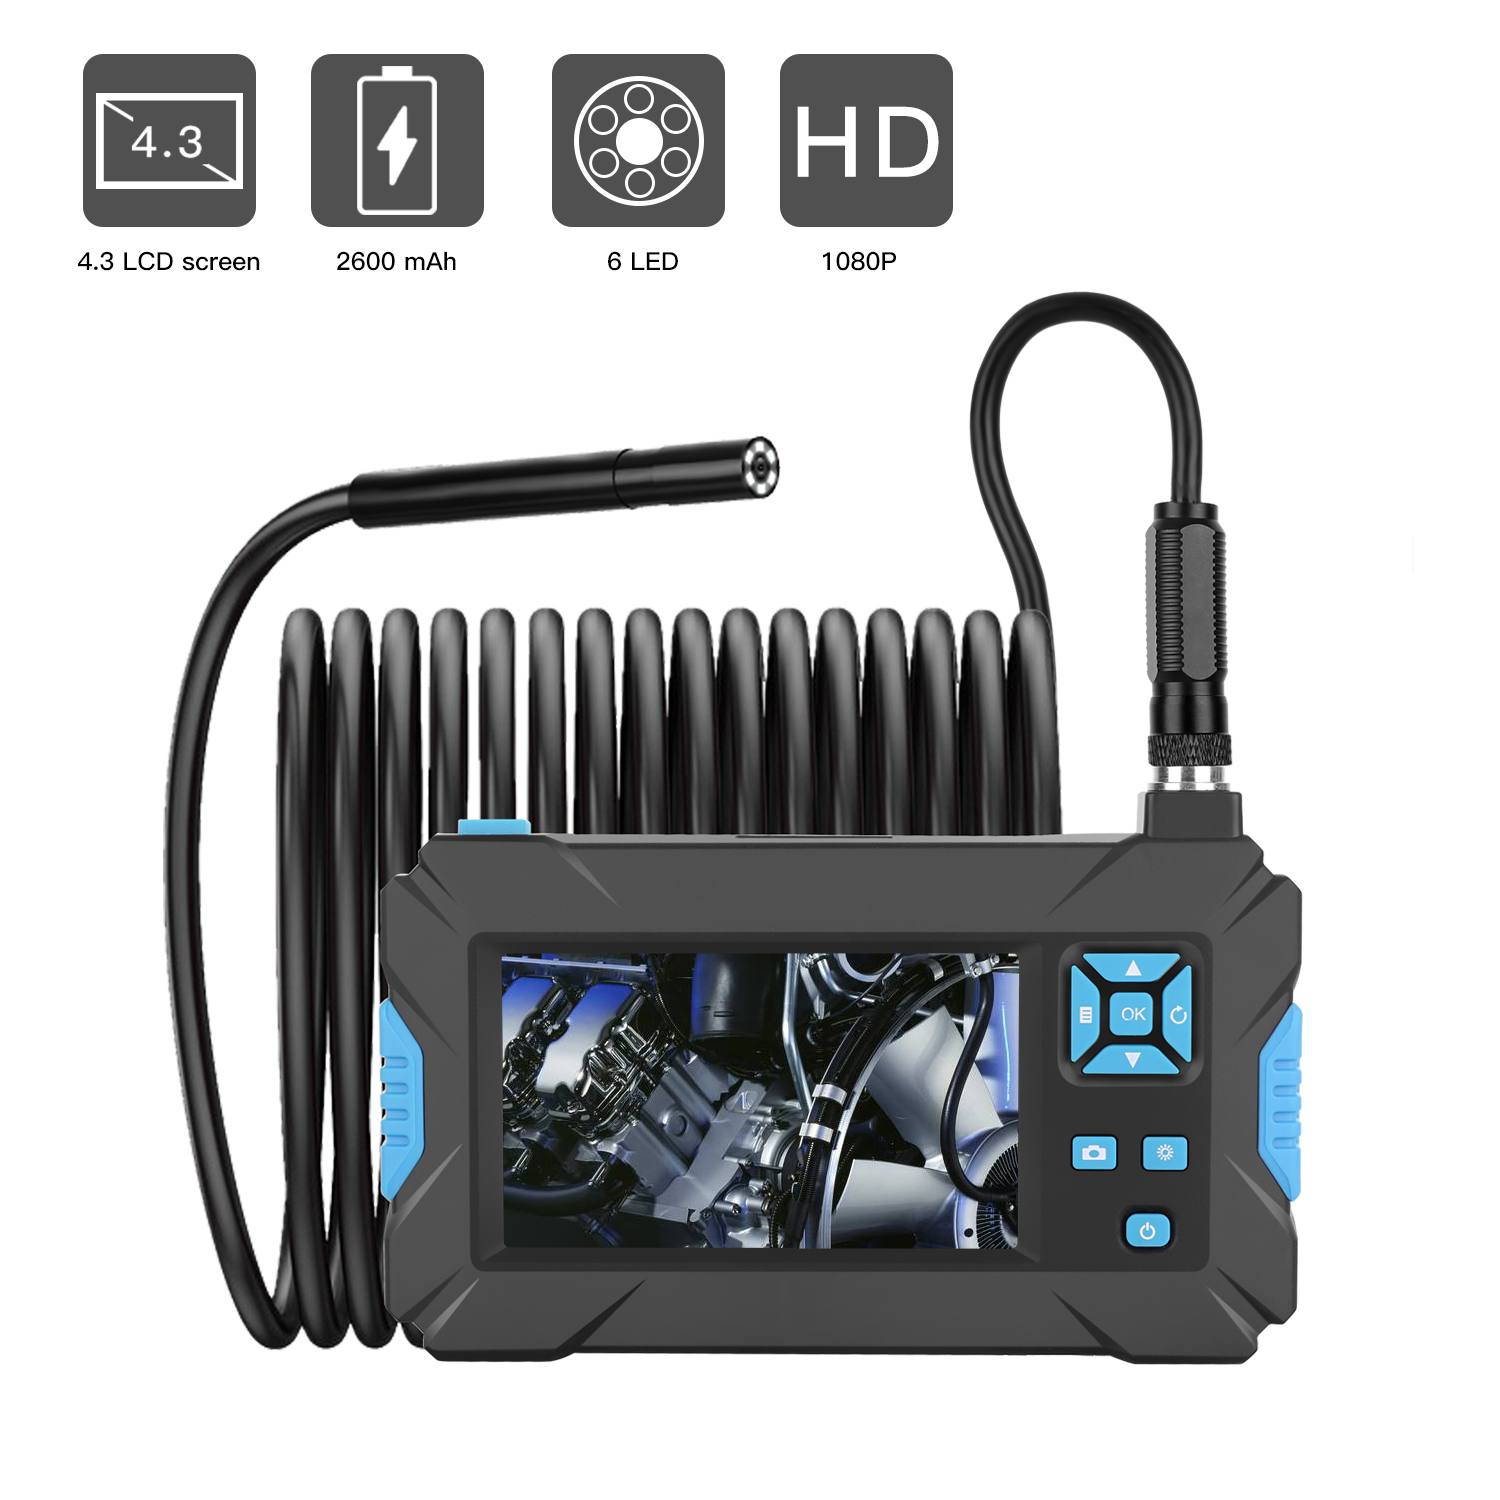 8 LED Industrial Endoscope Inspection Camera with 4.3in Screen Diameter 8mm Video Inspection Camera P40 1080P Waterproof Inspection Camera